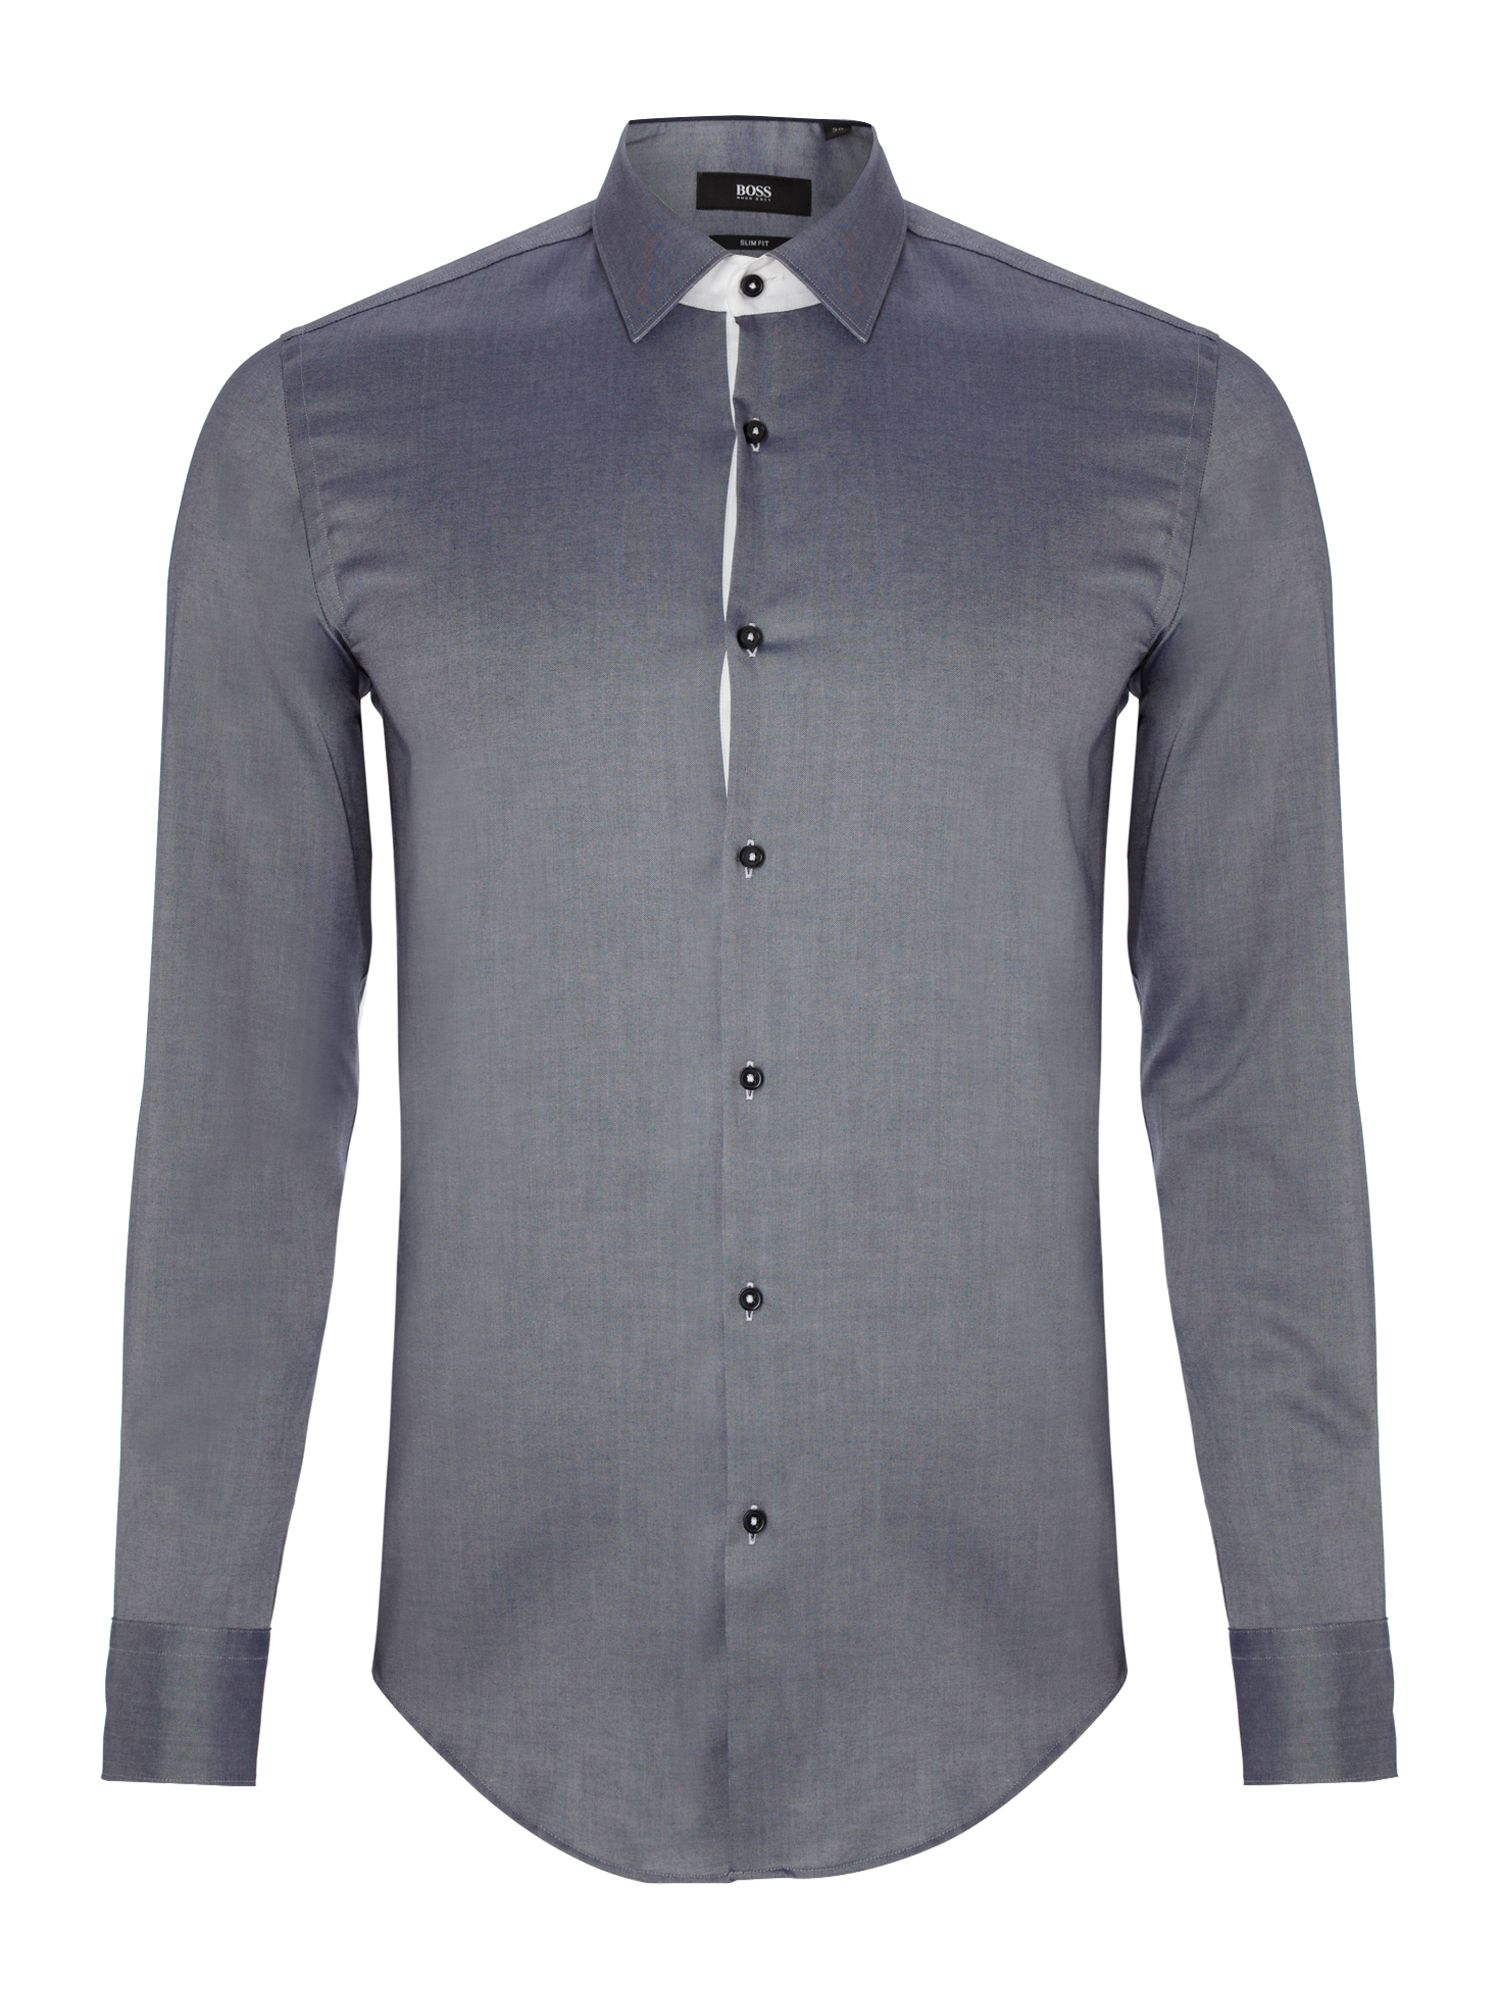 Juri chambrey slim fit shirt